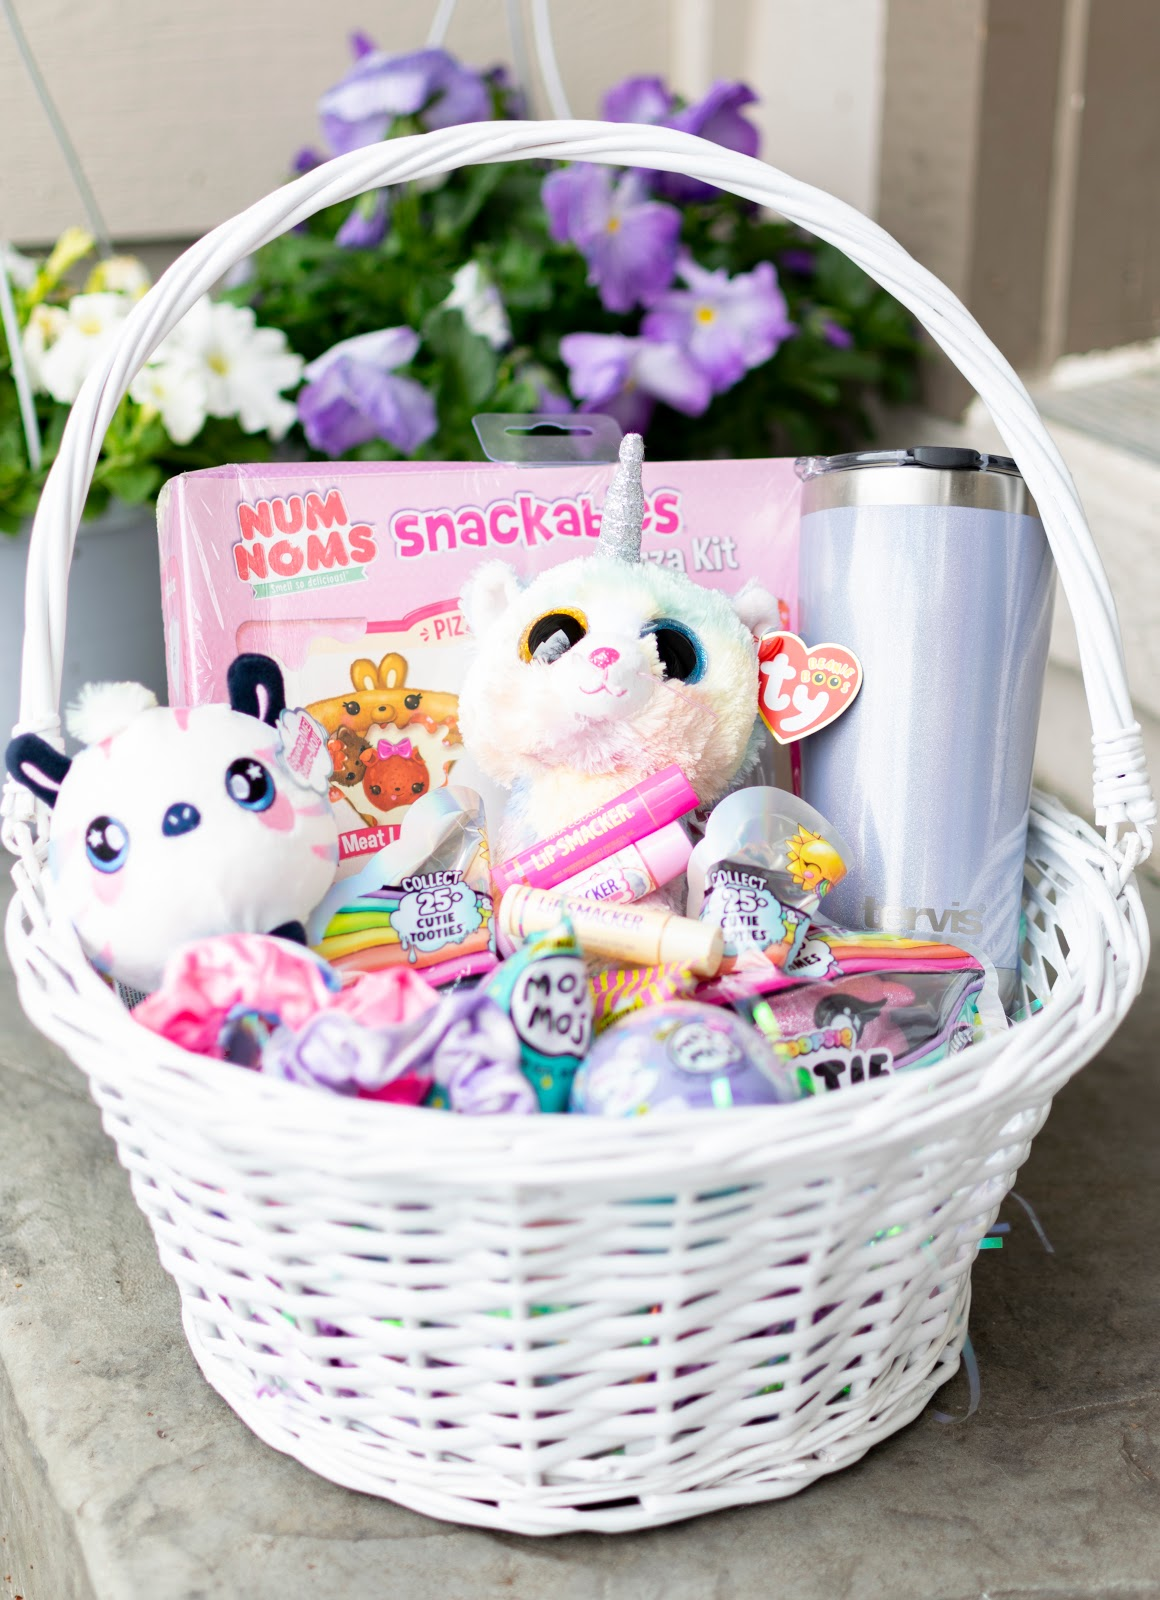 Easter Basket Gift Ideas For Girls The Easter Bunny Himself Couldn T Do Better Daphnie Pearl